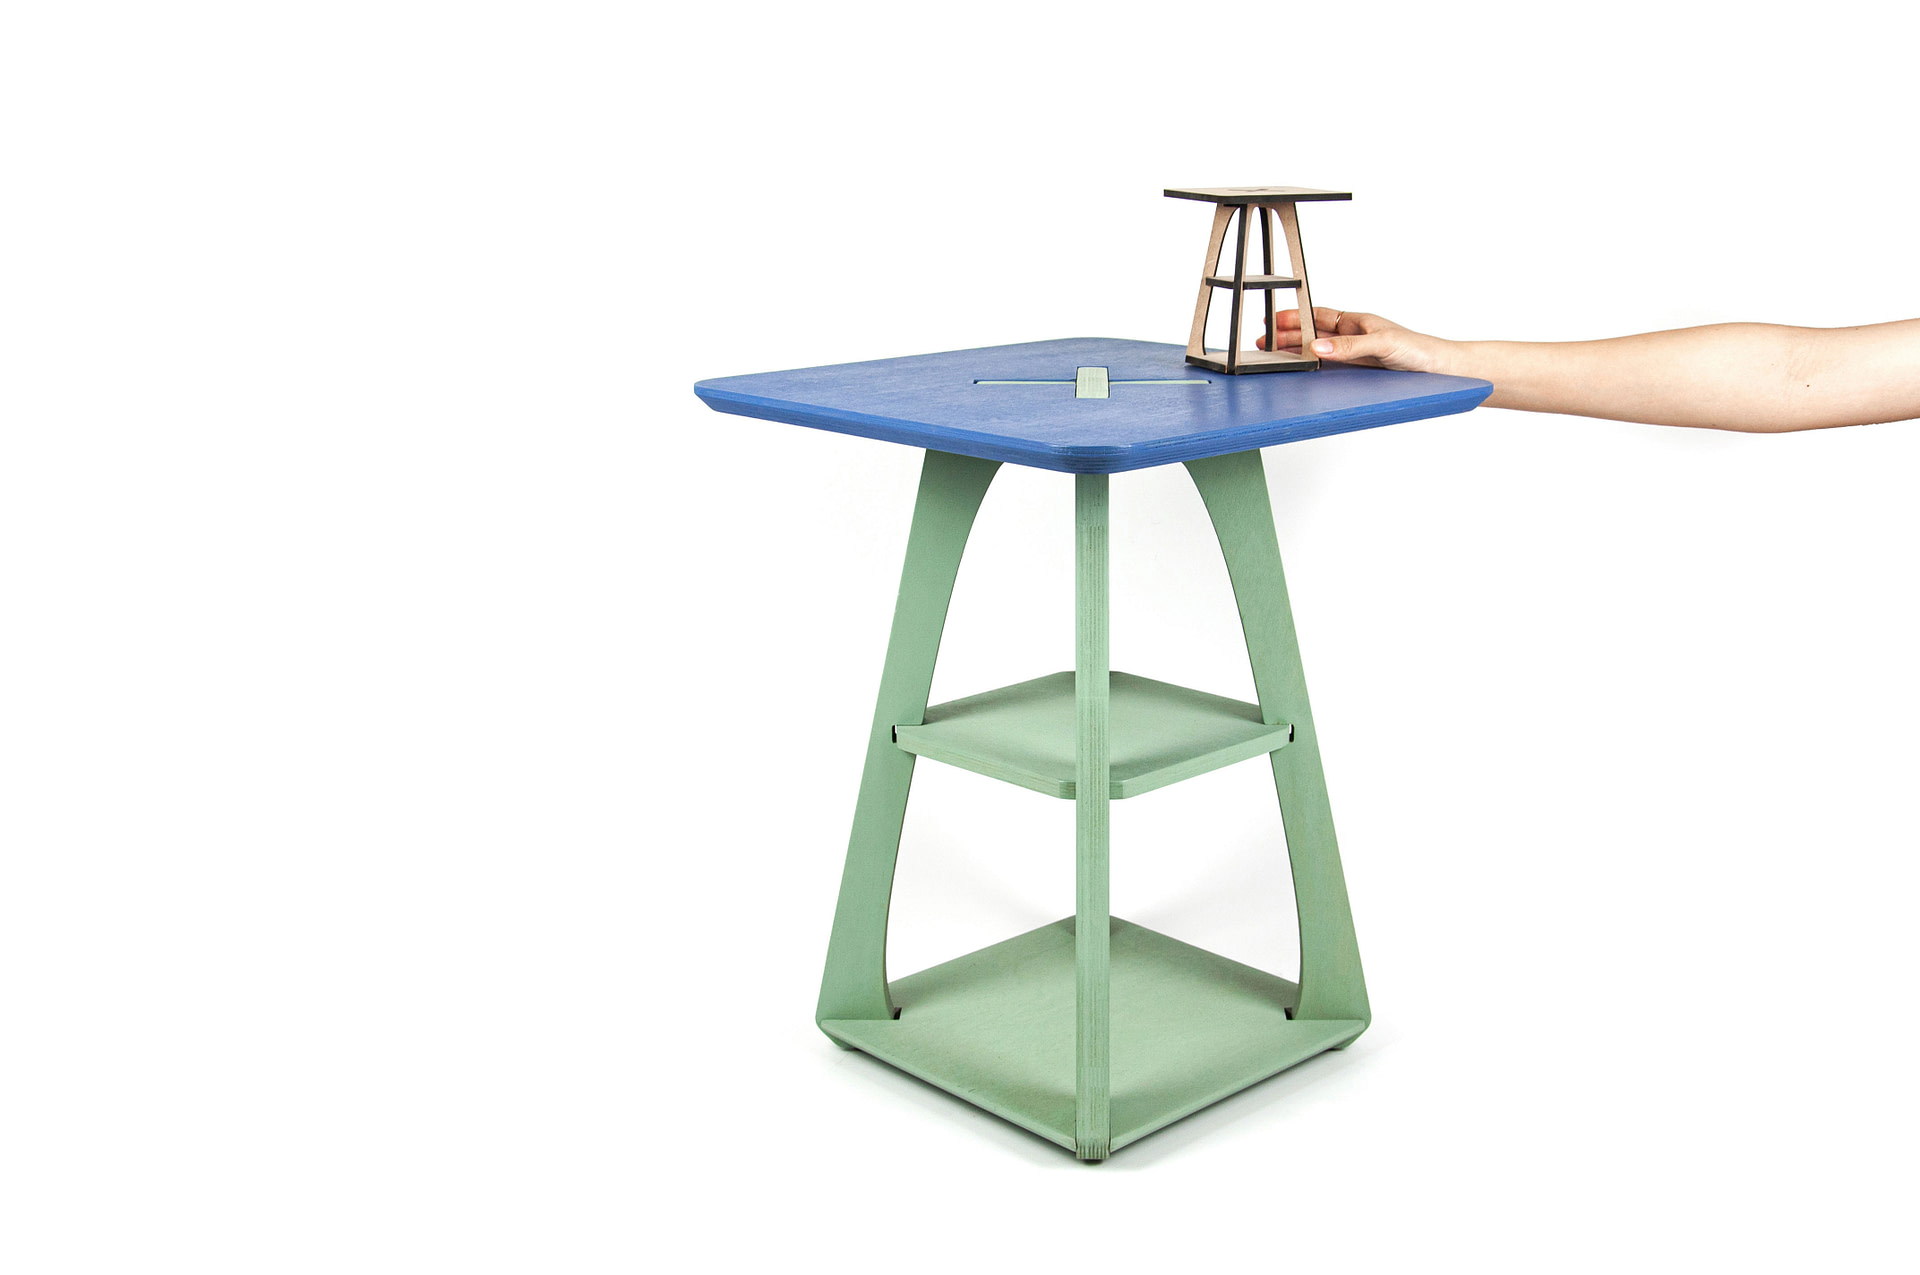 9.-MOGU-Table-11-1